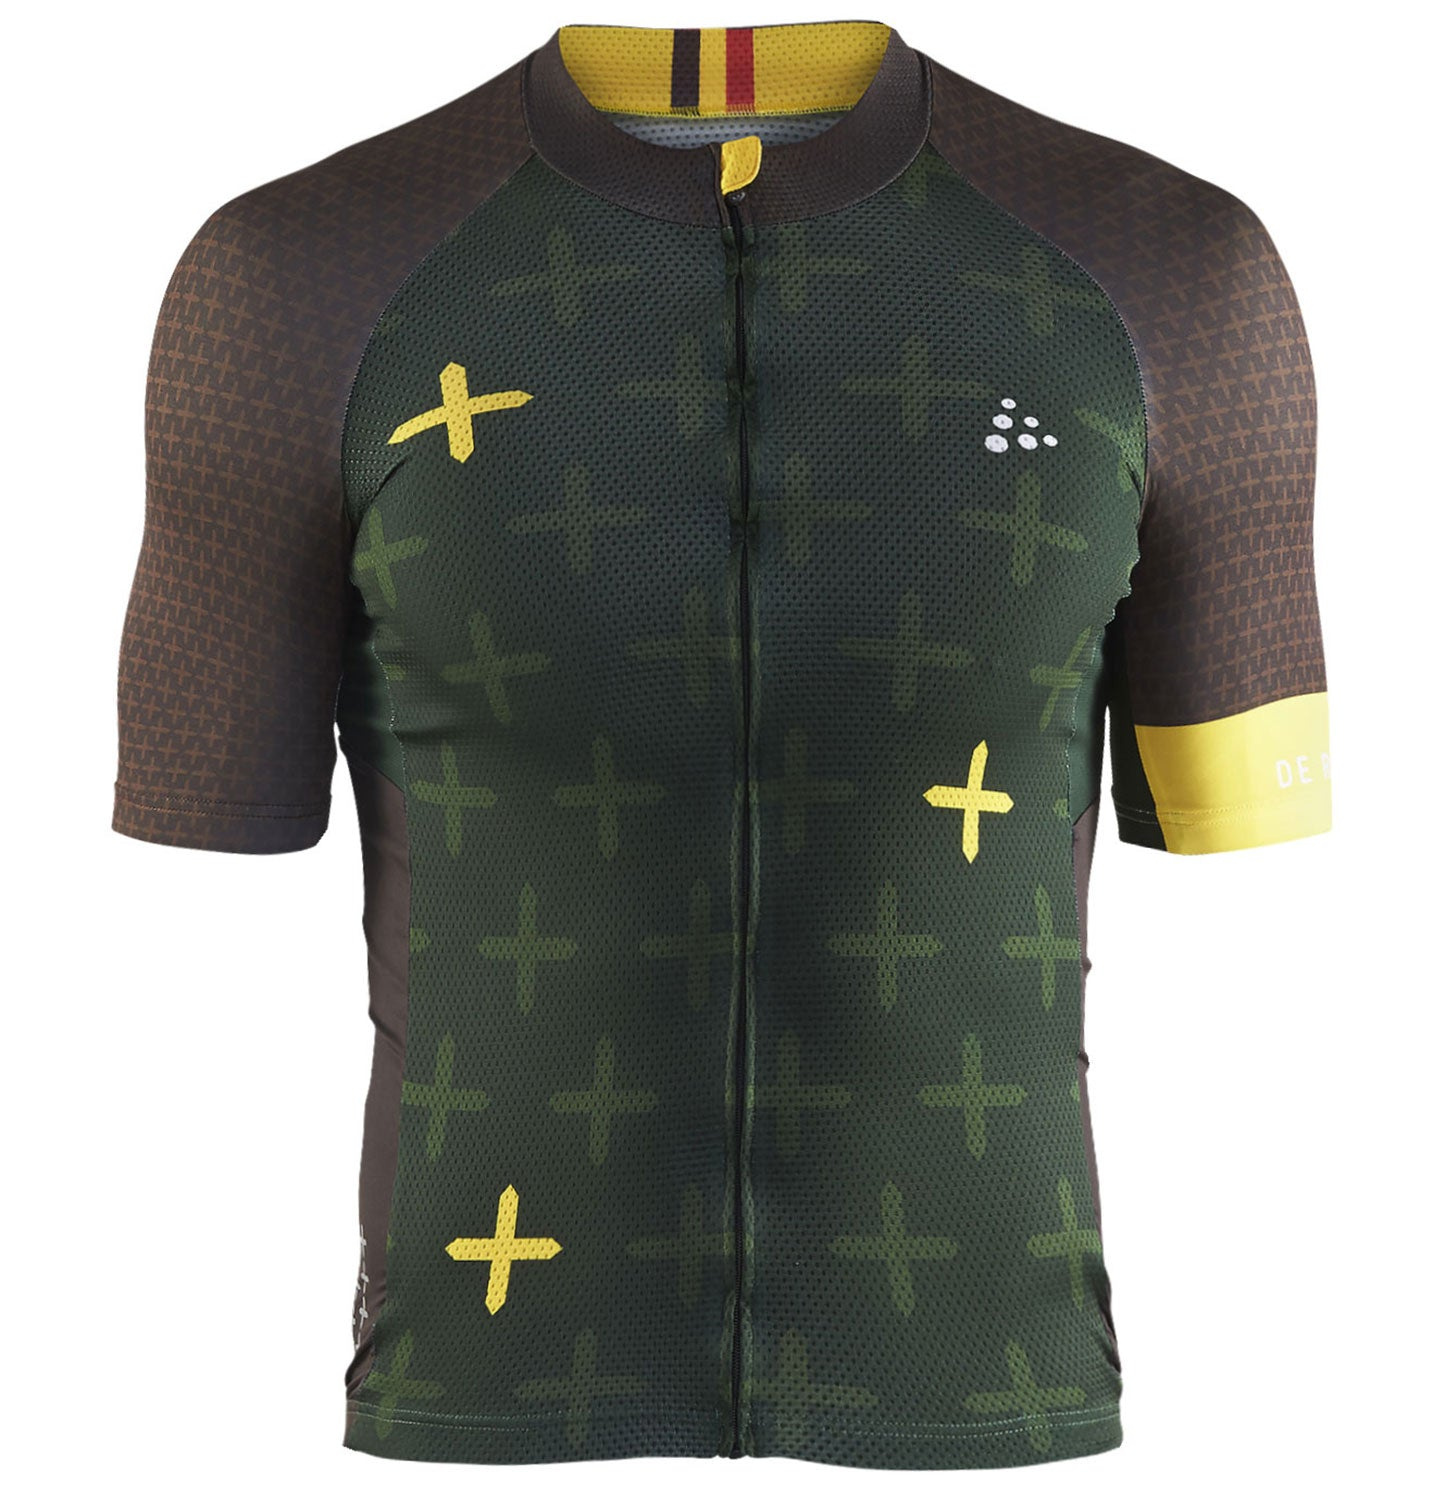 Tour of Flanders Monument Jersey